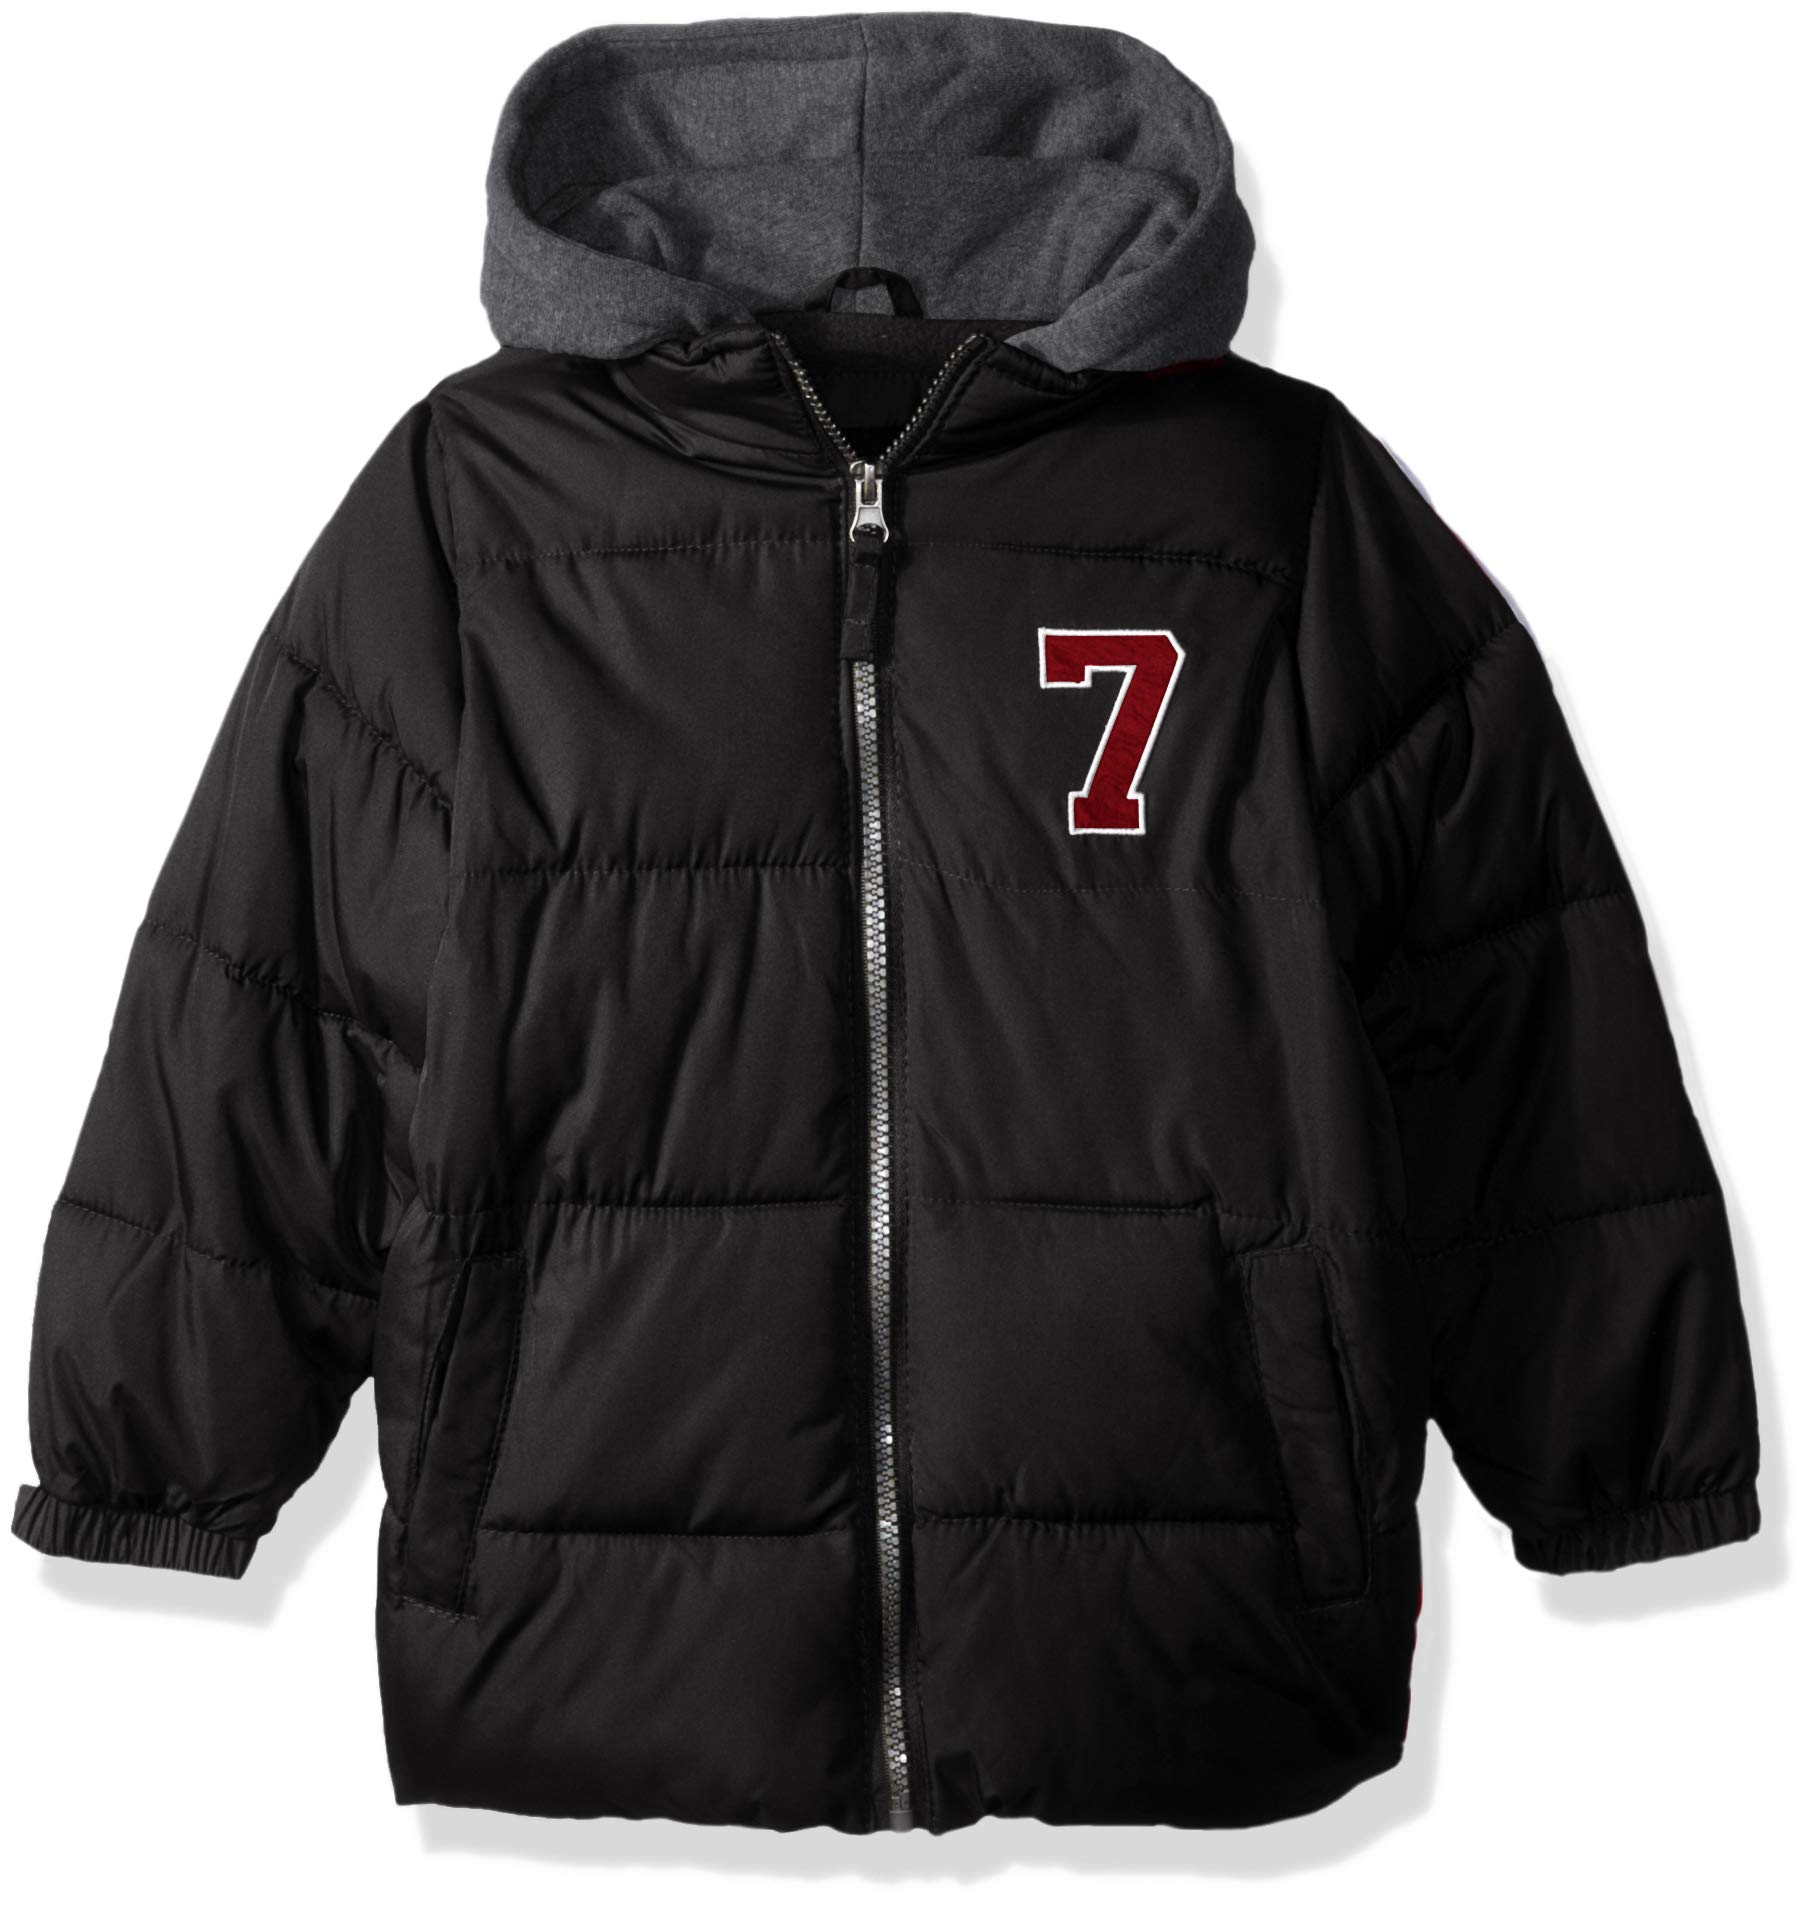 iXtreme Boys' Big Puffer Jacket with Fleece Hood, Black, 14/16